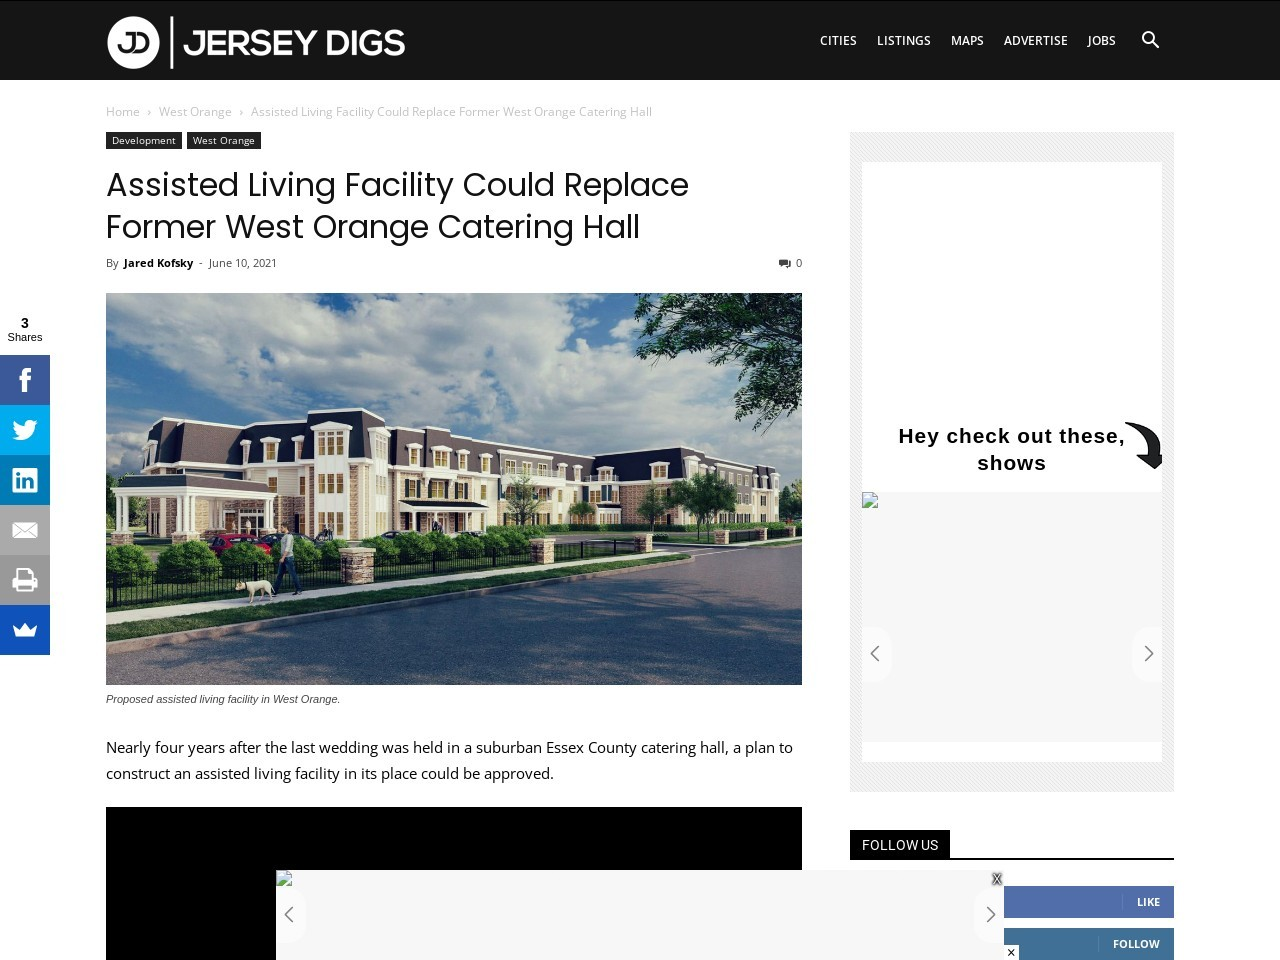 Assisted Living Facility Could Replace Former West Orange Catering Hall